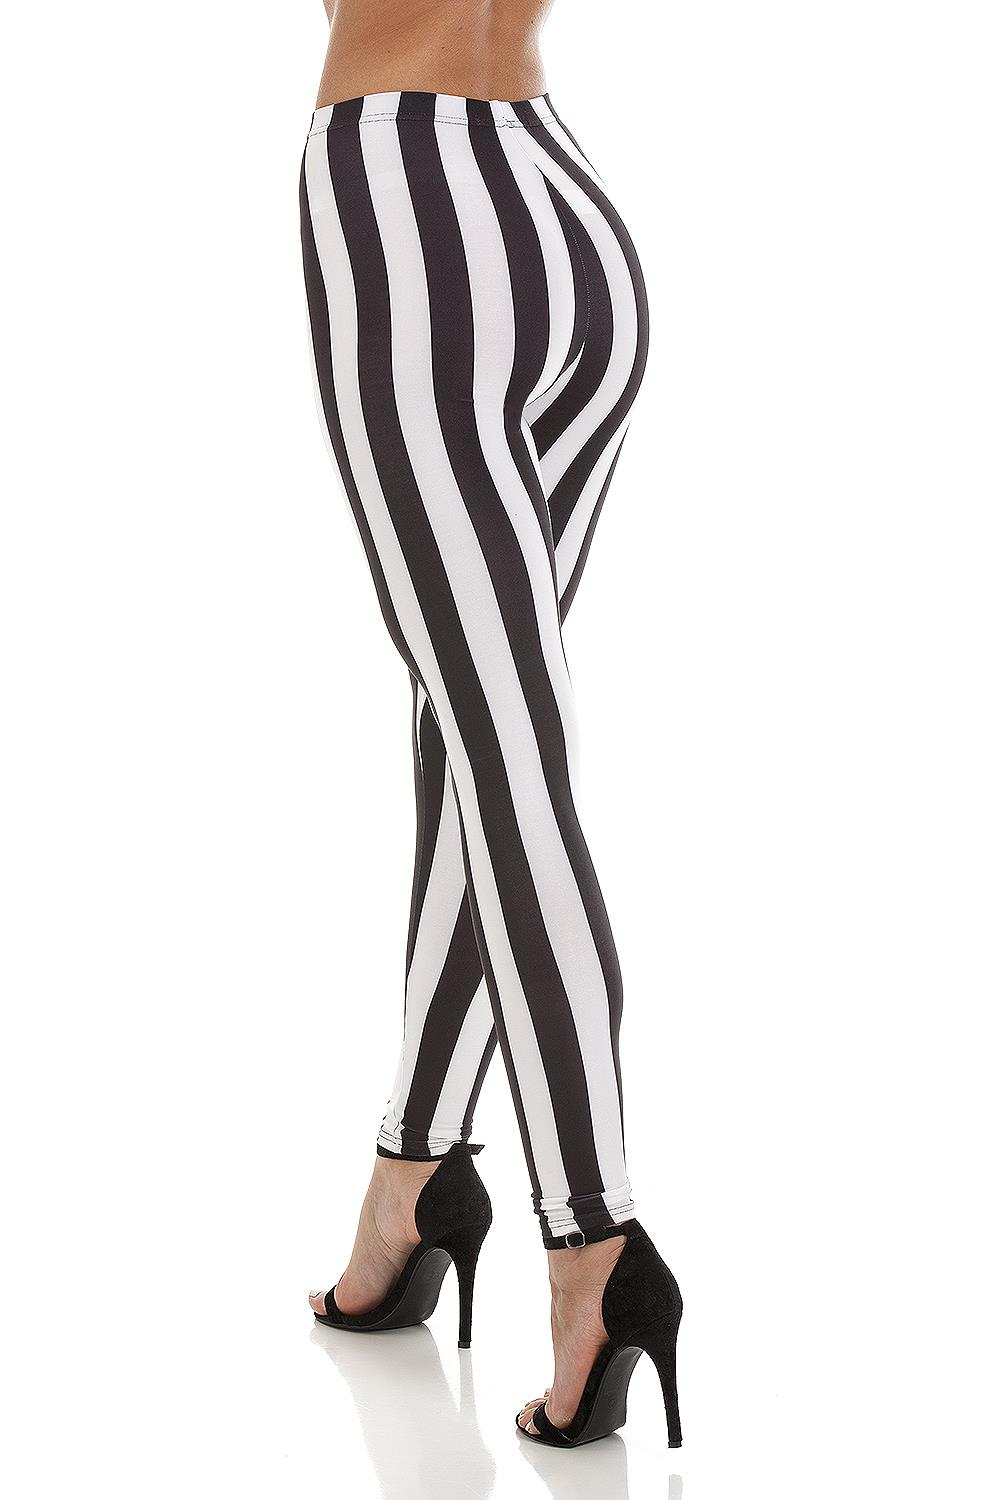 Striped Leggings Black White (5) (Custom)